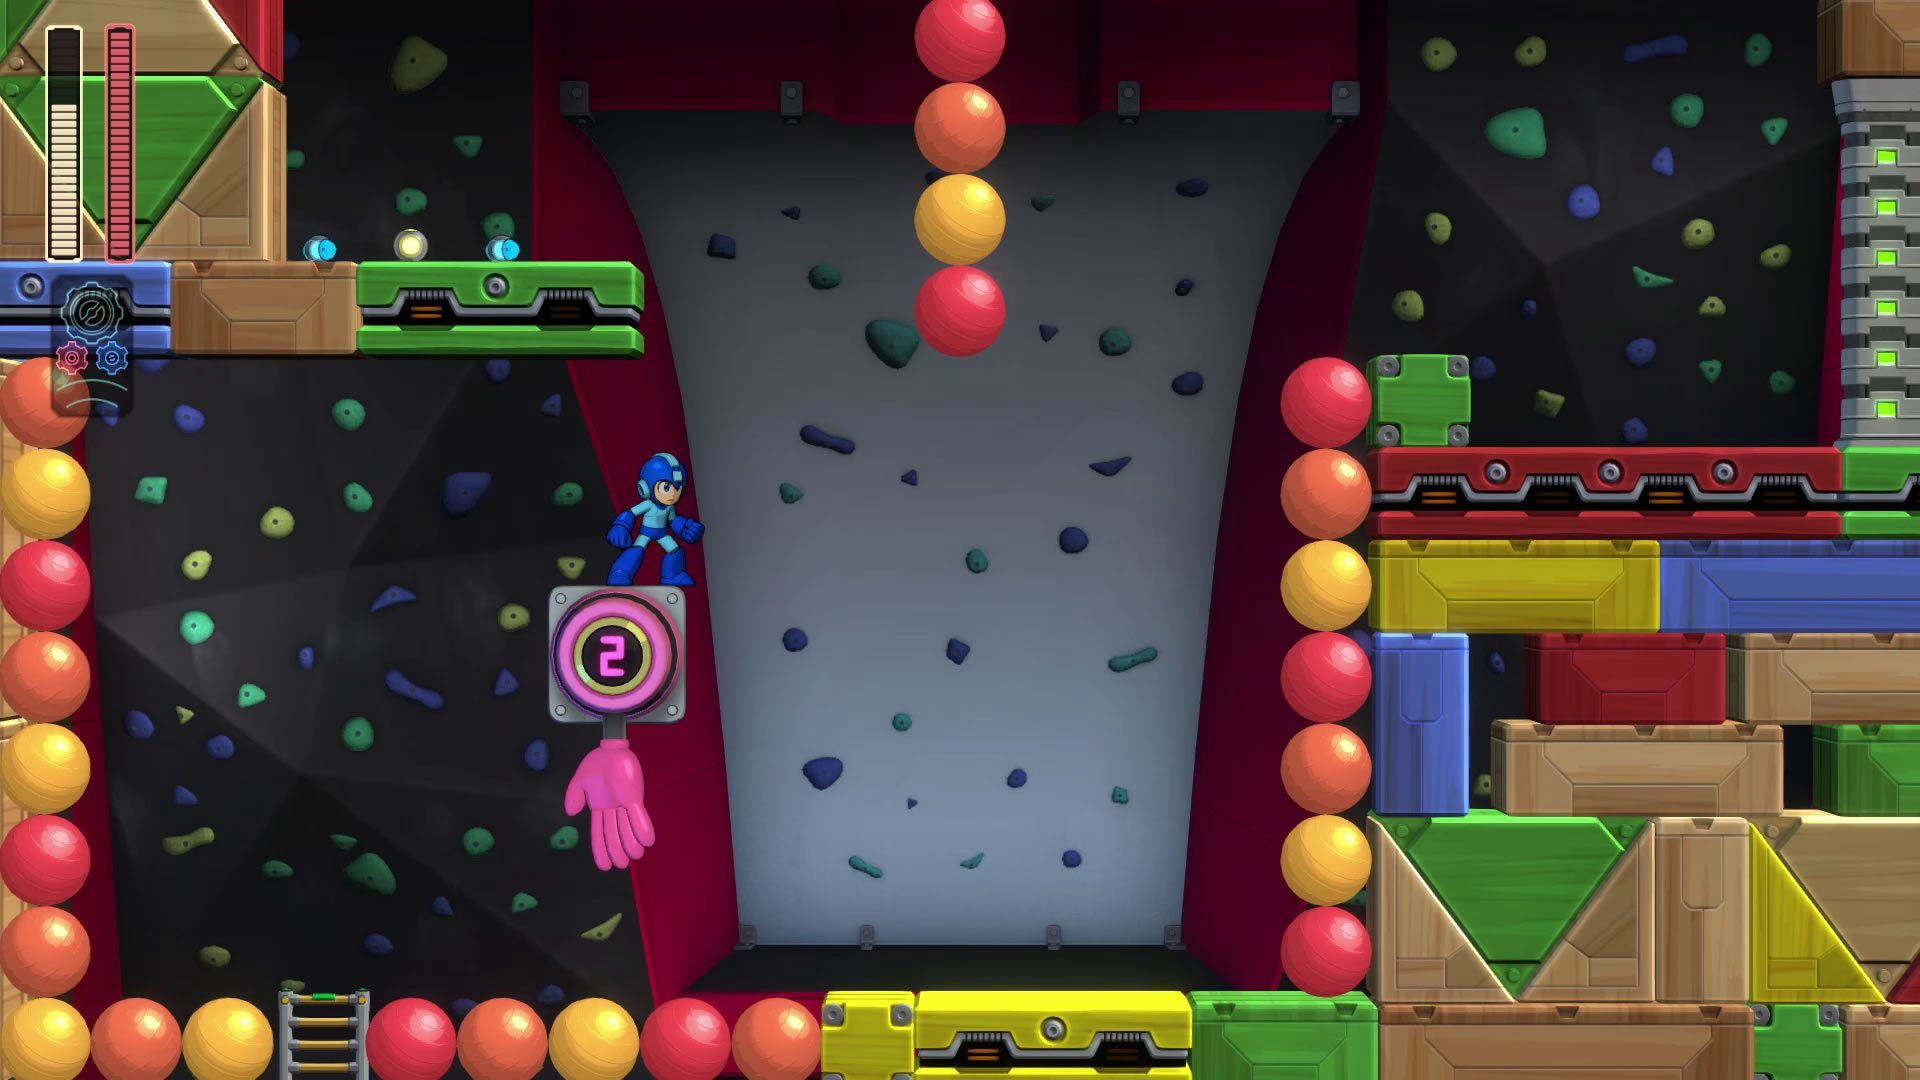 Bounce Man's level is among Mega Man 11's most intense challenges.